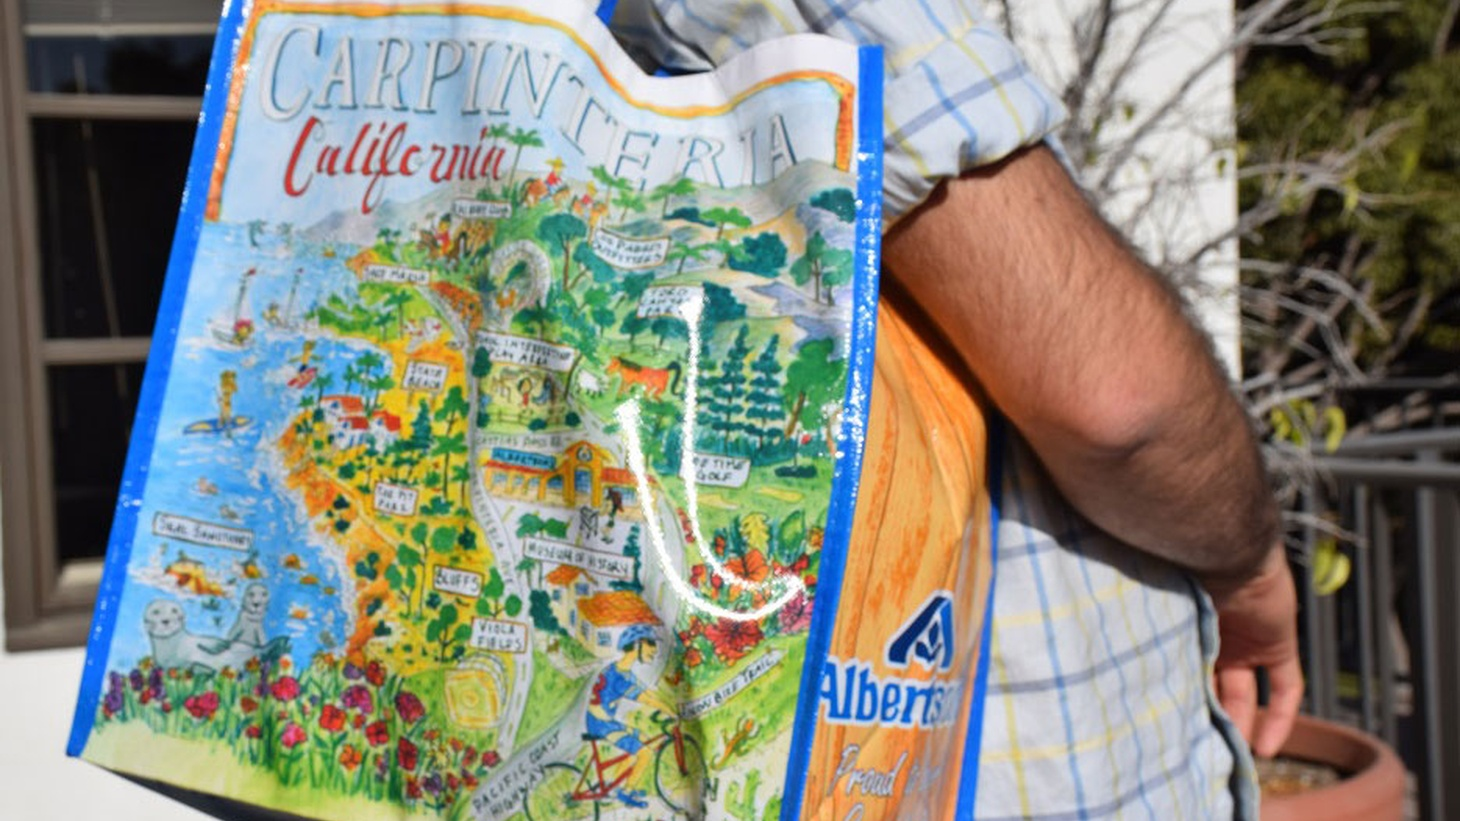 Carpinteria is known for its gorgeous seaside bluffs, all the more beautiful since that city did away with single-use bags. Its single-use bag ban is part of a larger story about community transformation.